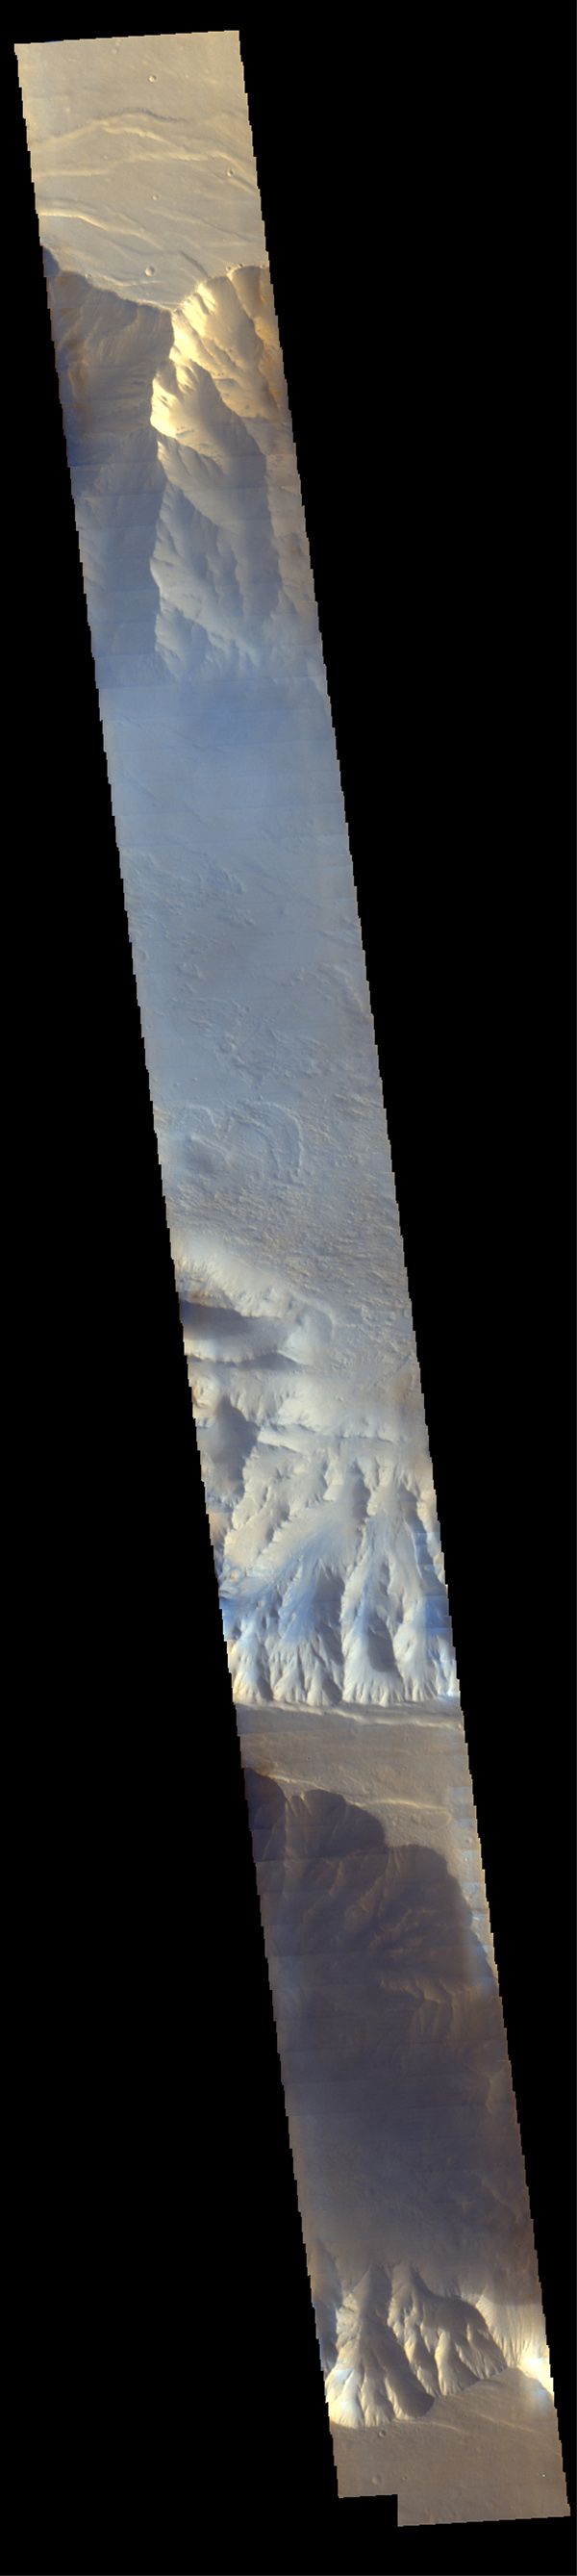 Coprates Chasma on Mars